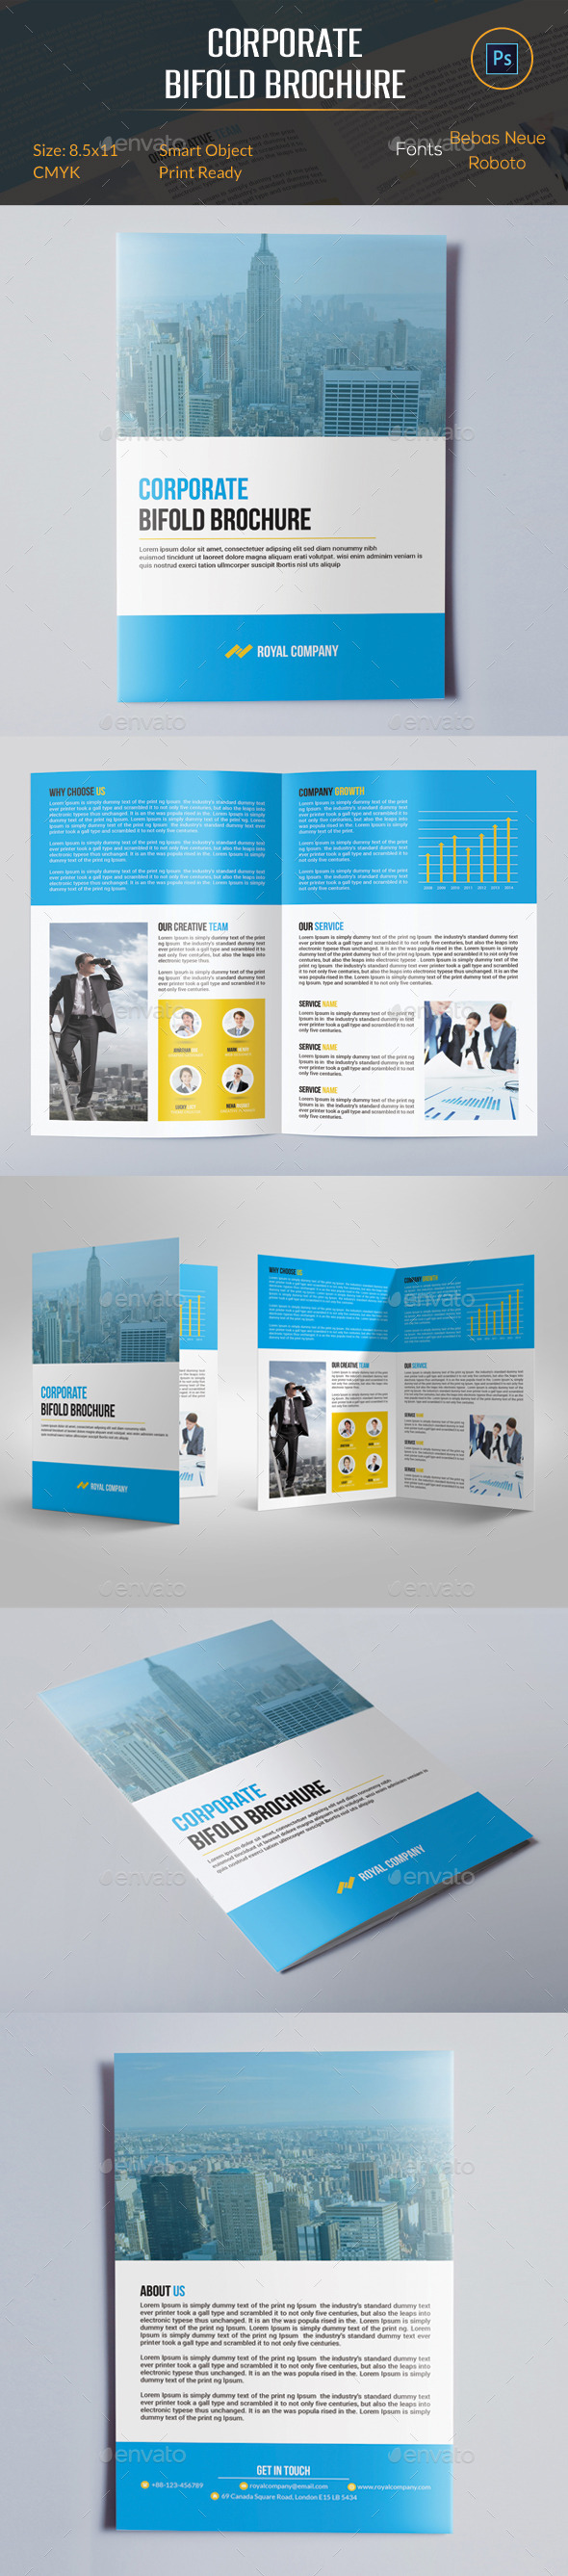 GraphicRiver Corporate Bifold Brochure 10599420